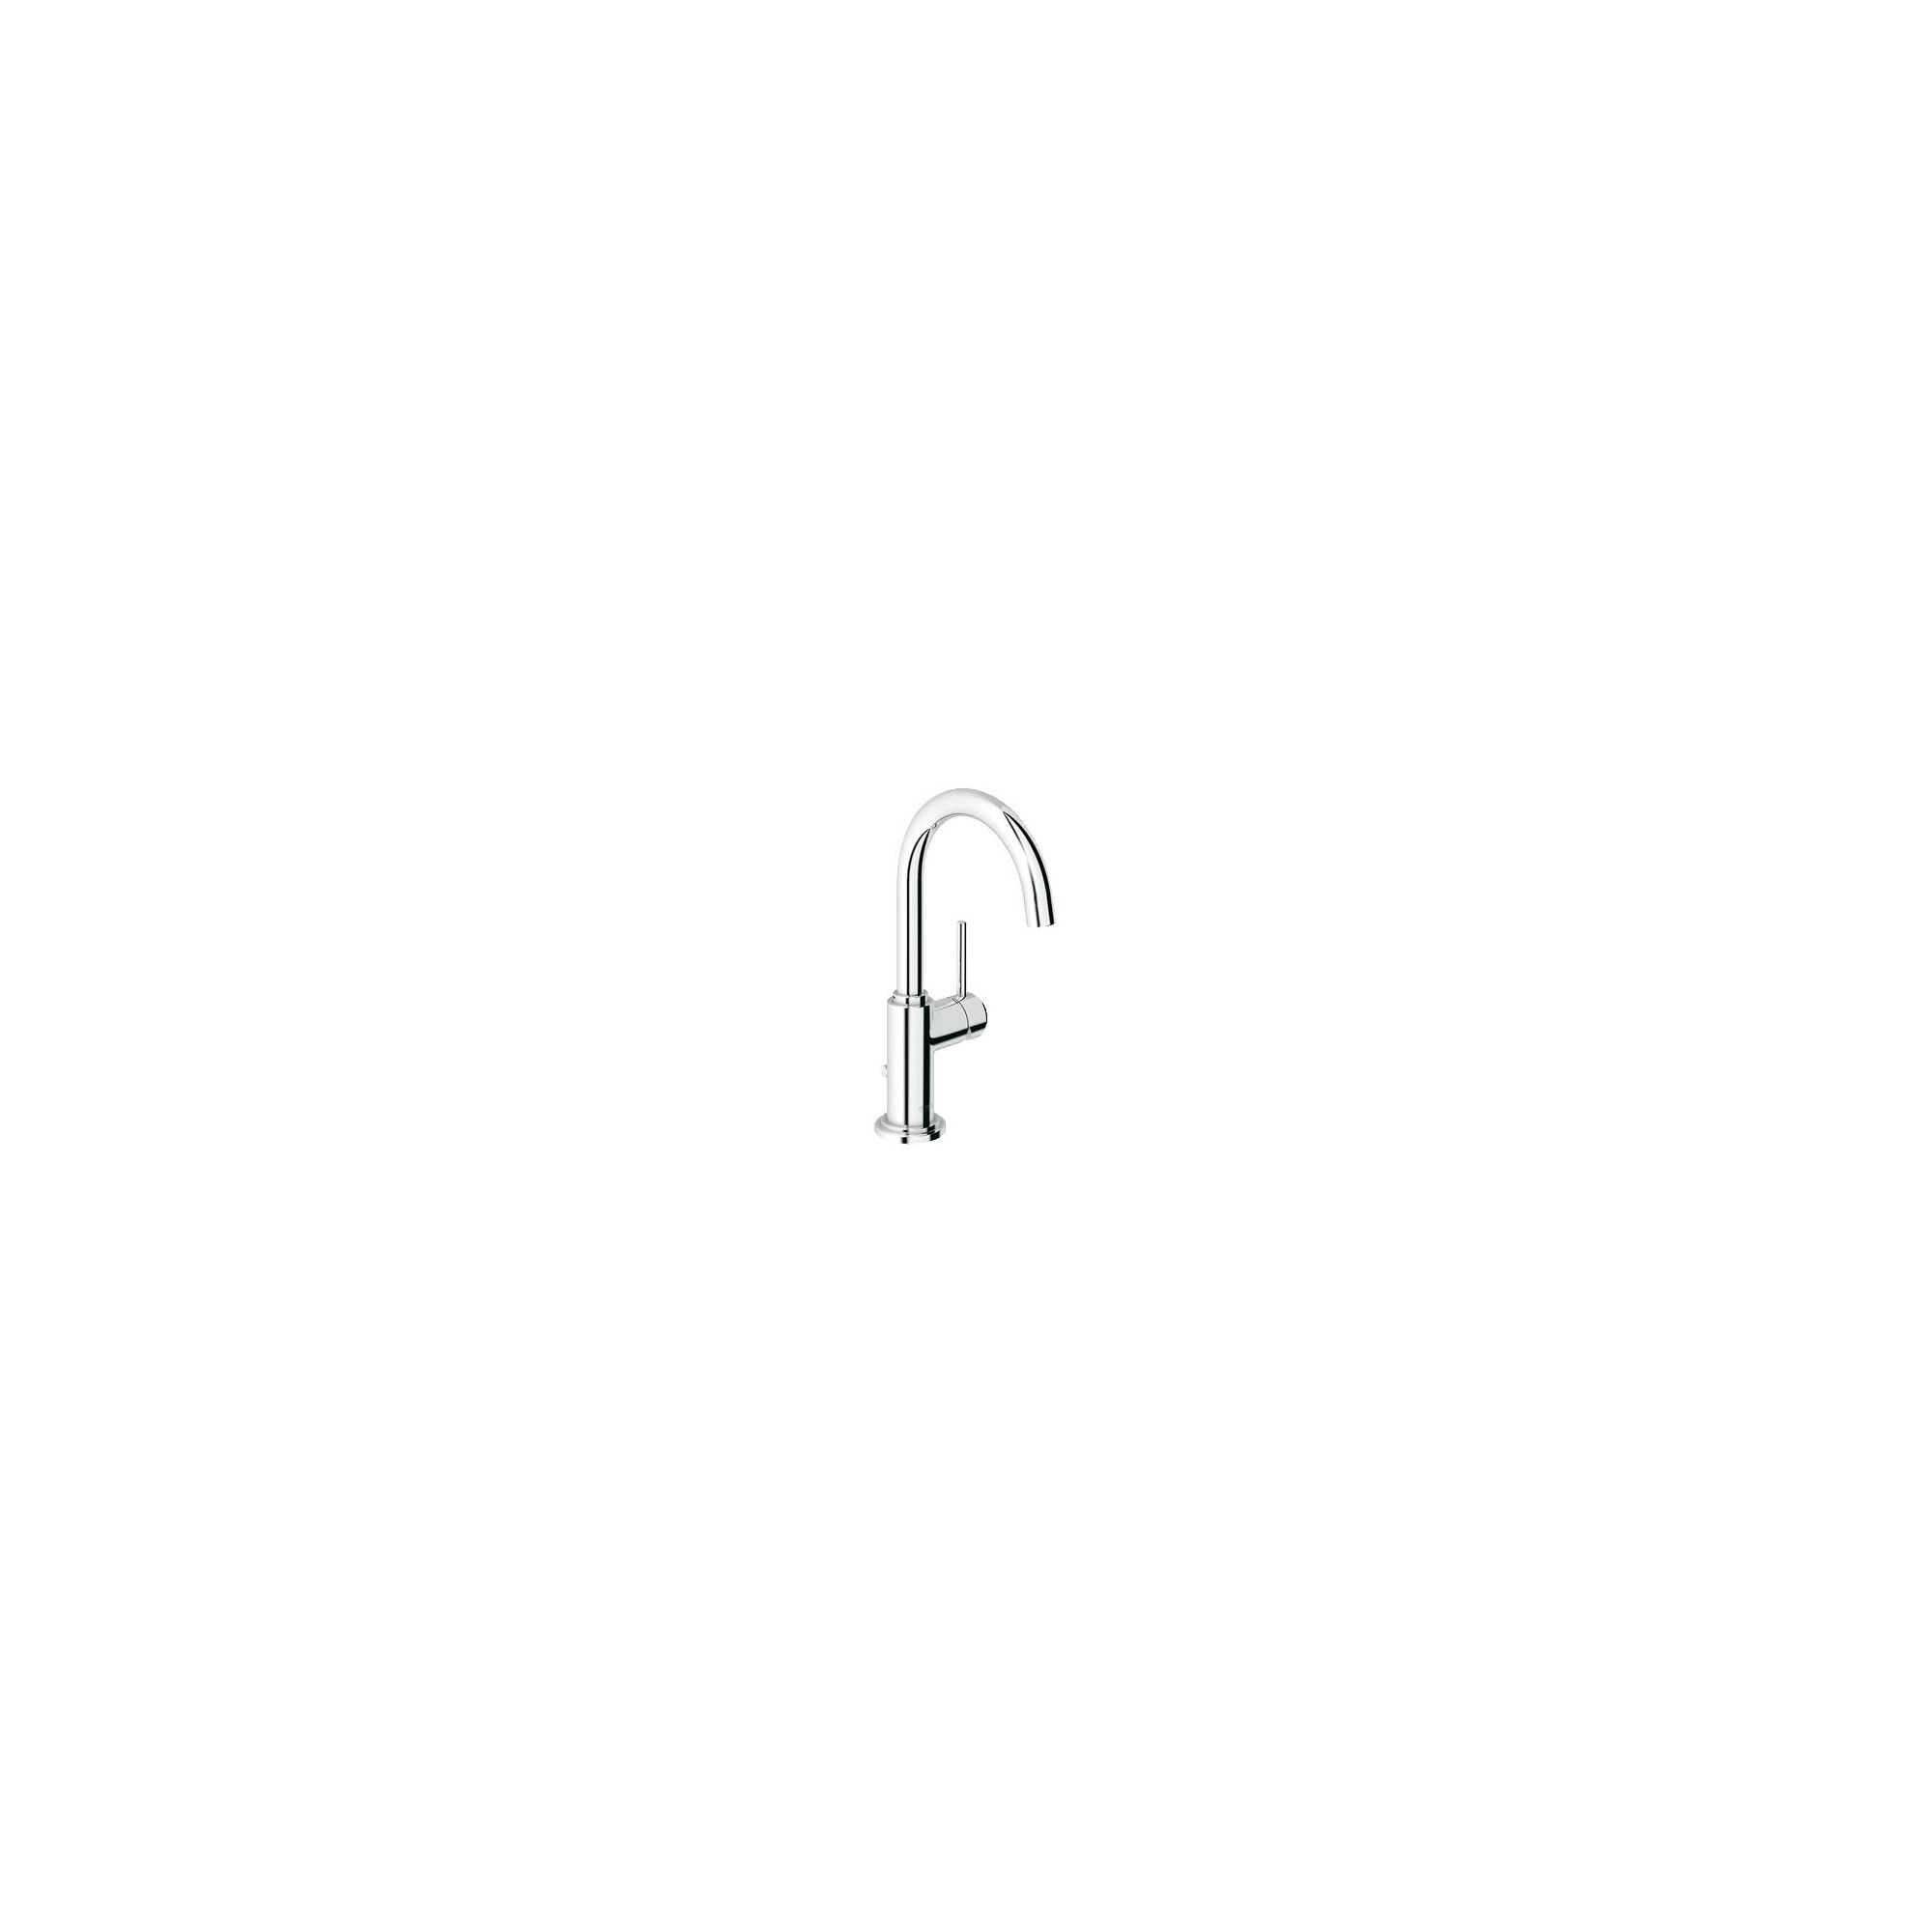 Grohe Atrio One Mono Basin Mixer Tap, Single Handle, Chrome at Tesco Direct